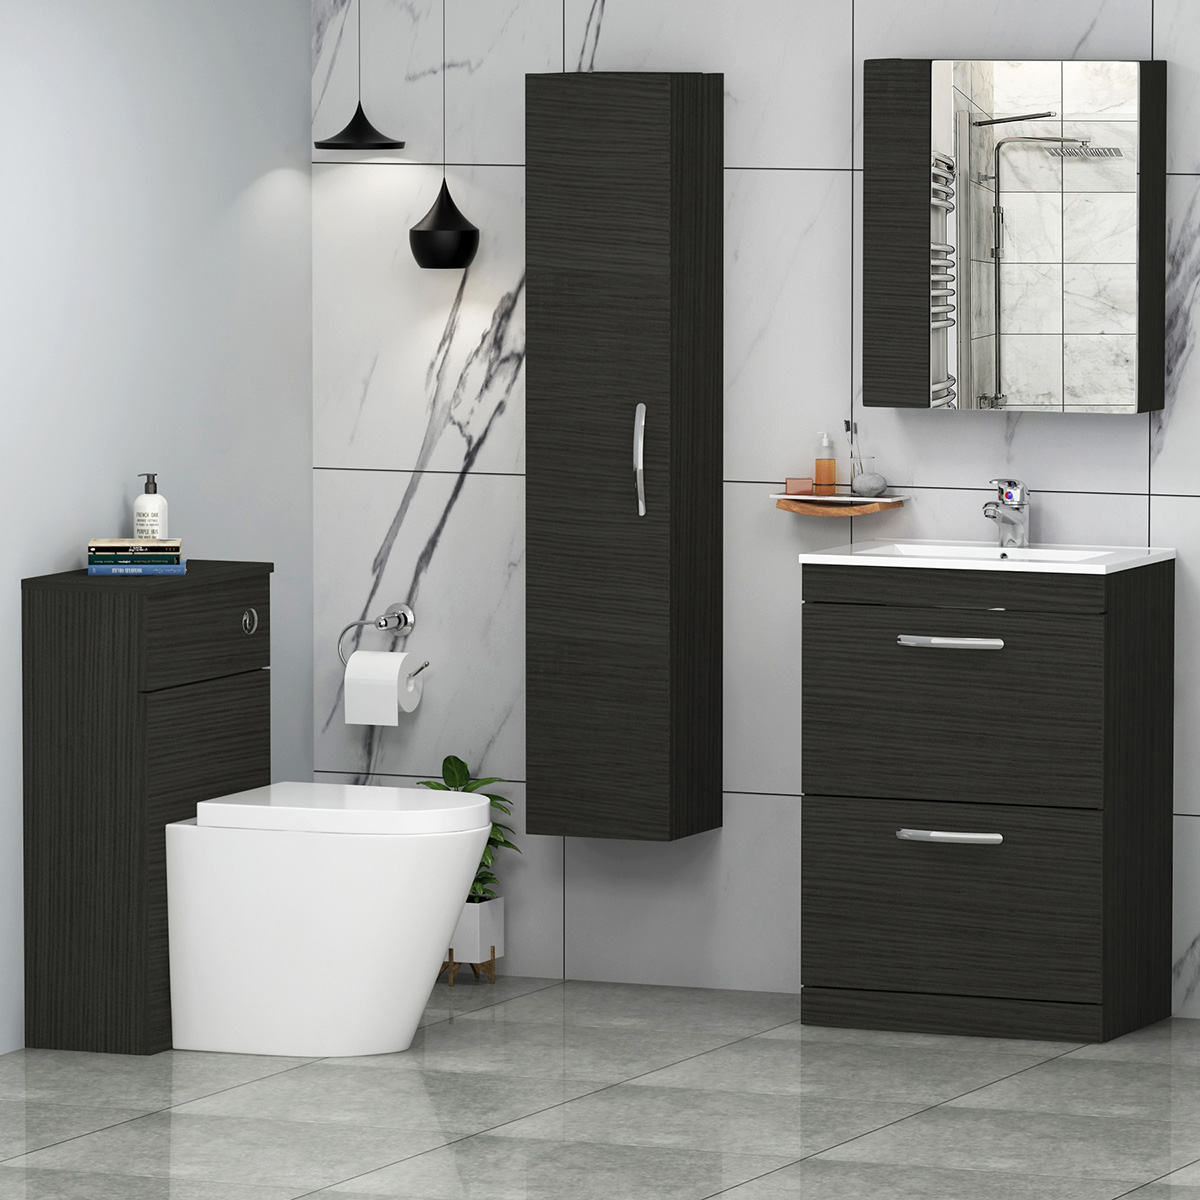 Top Five Tips for Choosing a Perfect Bathroom Storage Cabinet